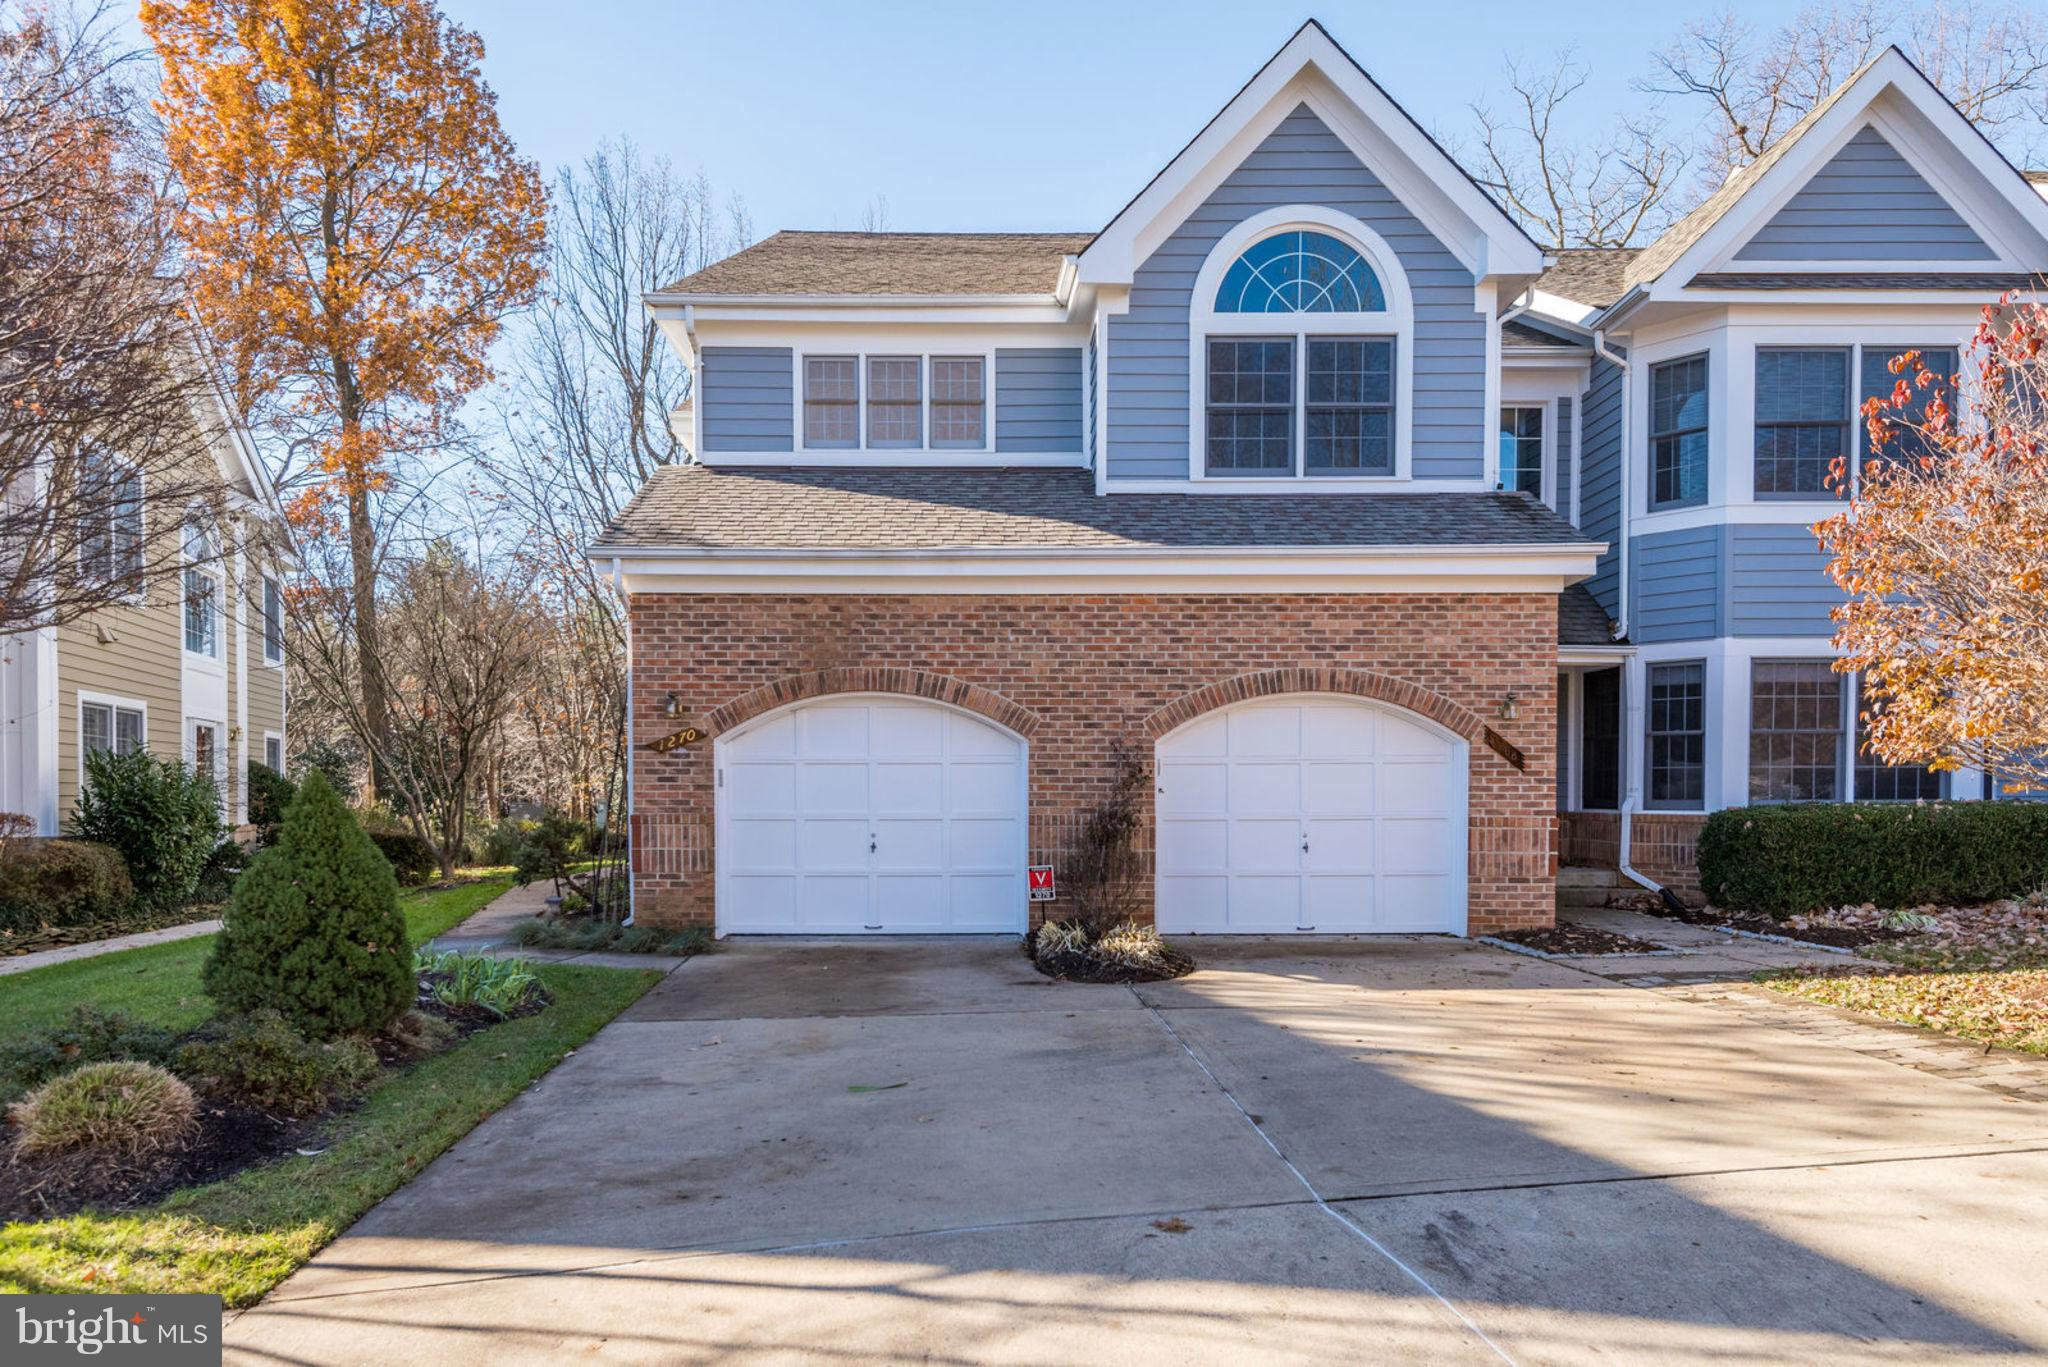 Beautiful, light-filled spacious, well maintained, N. Reston  end-unit Townhome. Granite stainless steel kitchen with abundant cabinet and counter space. Quick ride to Reston Metro, Town Center, shopping and restaurants. Fenced rear yard/deck backs to buffer of trees. Just move in!!